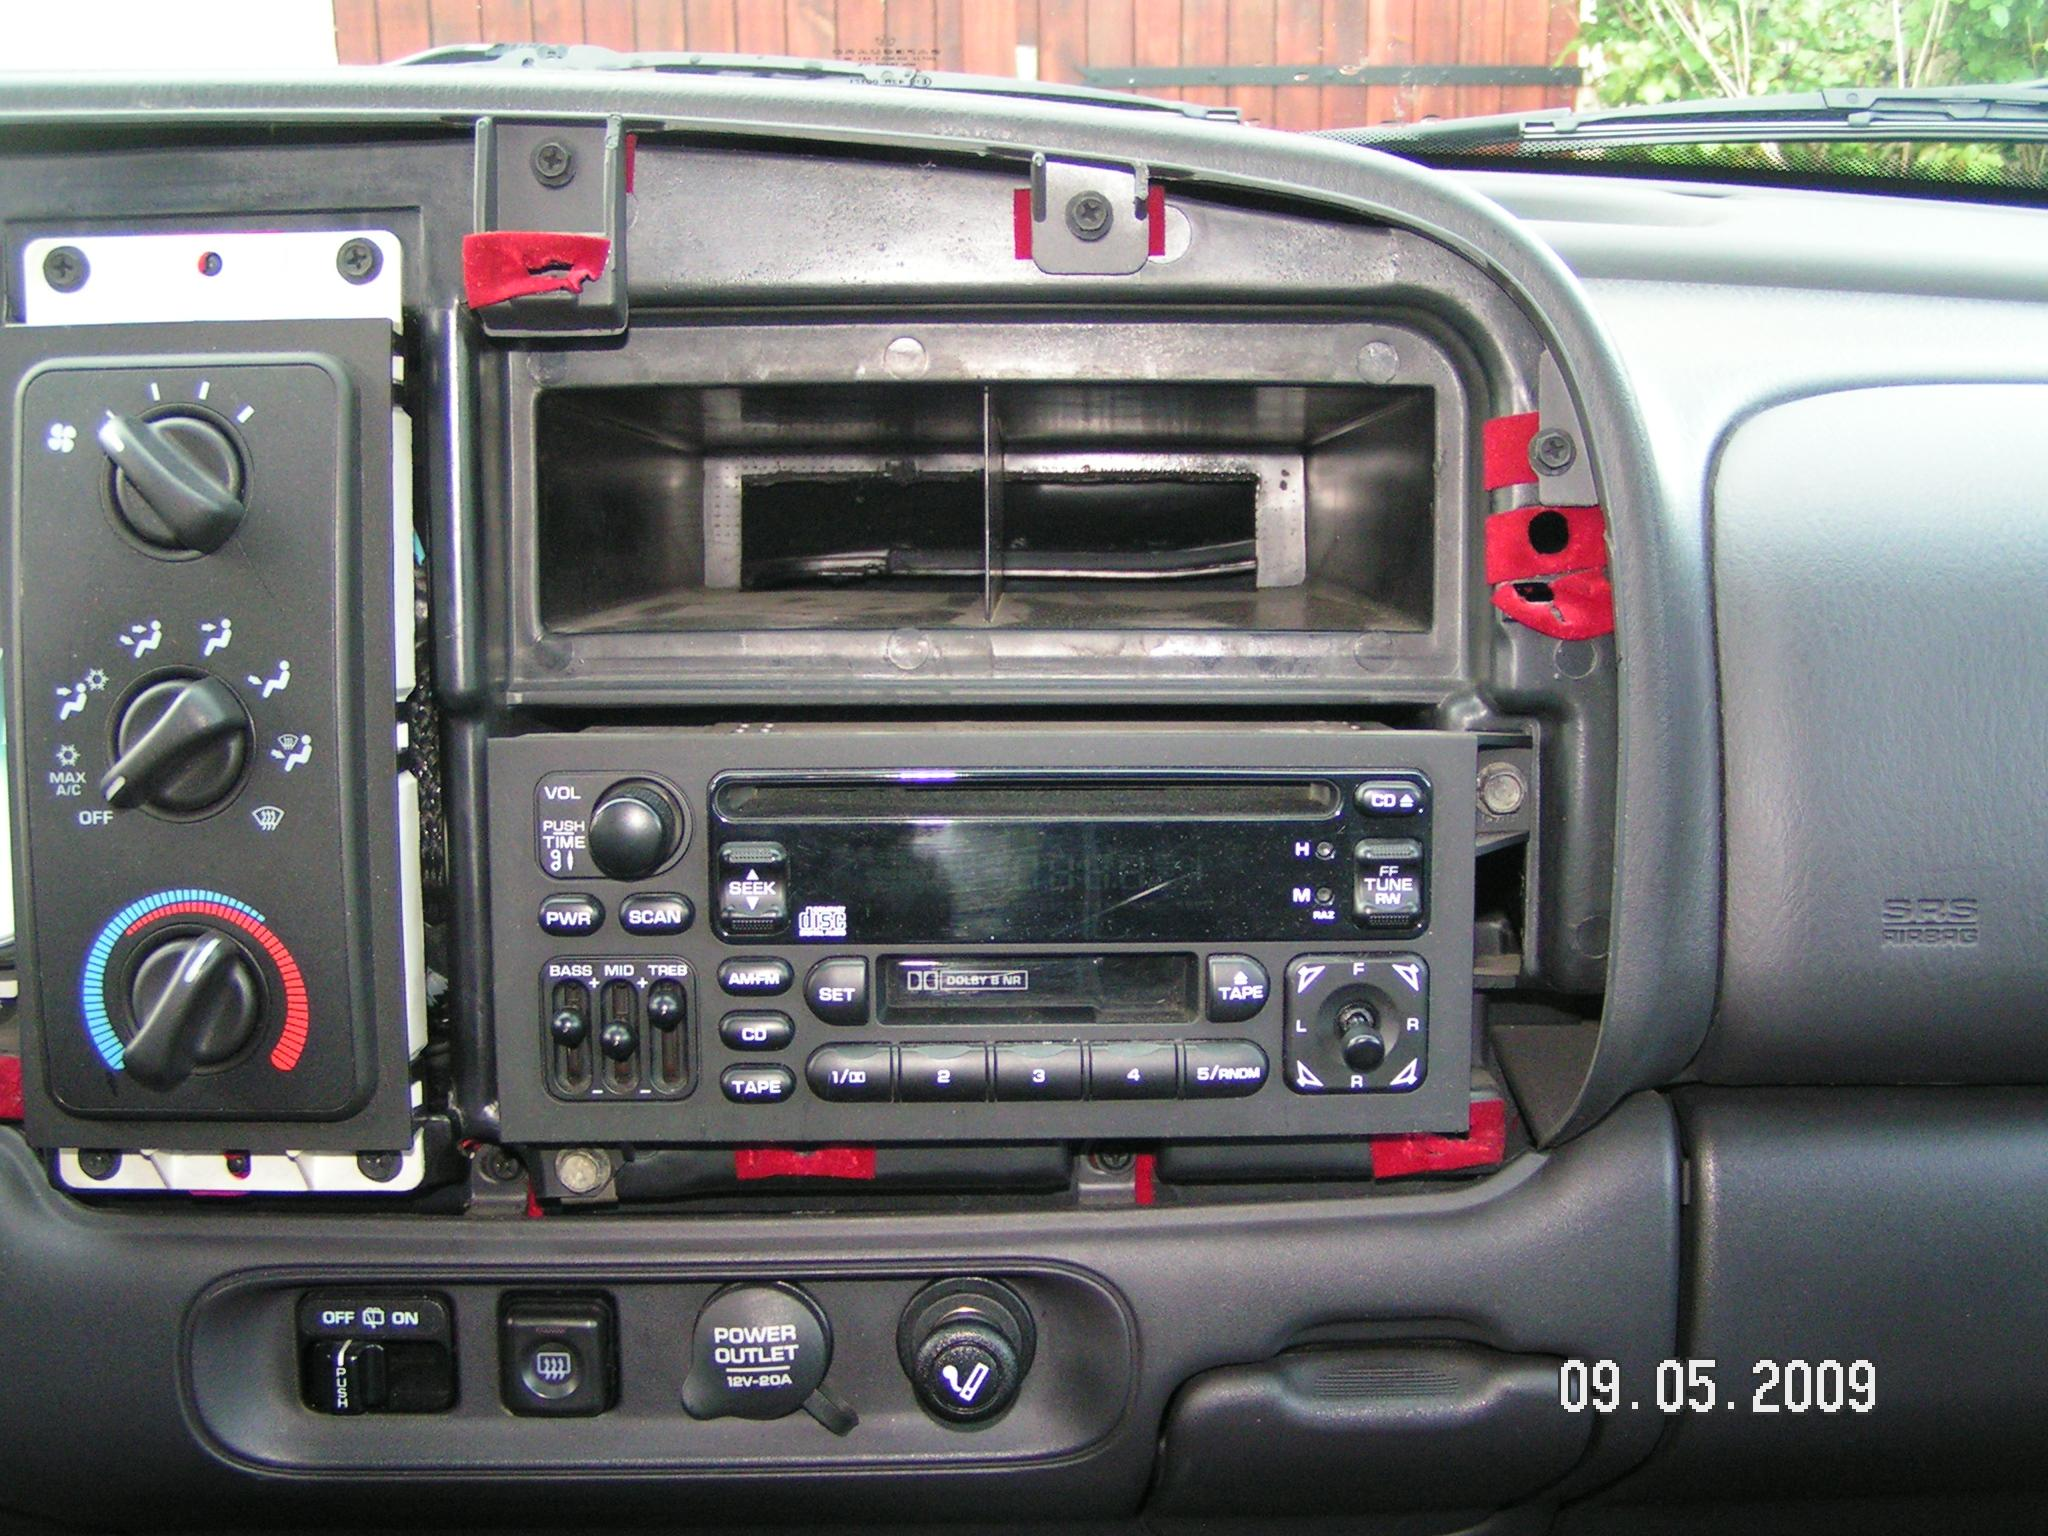 2002 Dodge Neon Radio Wiring Diagram 1999 Dodge Dakota Stereo